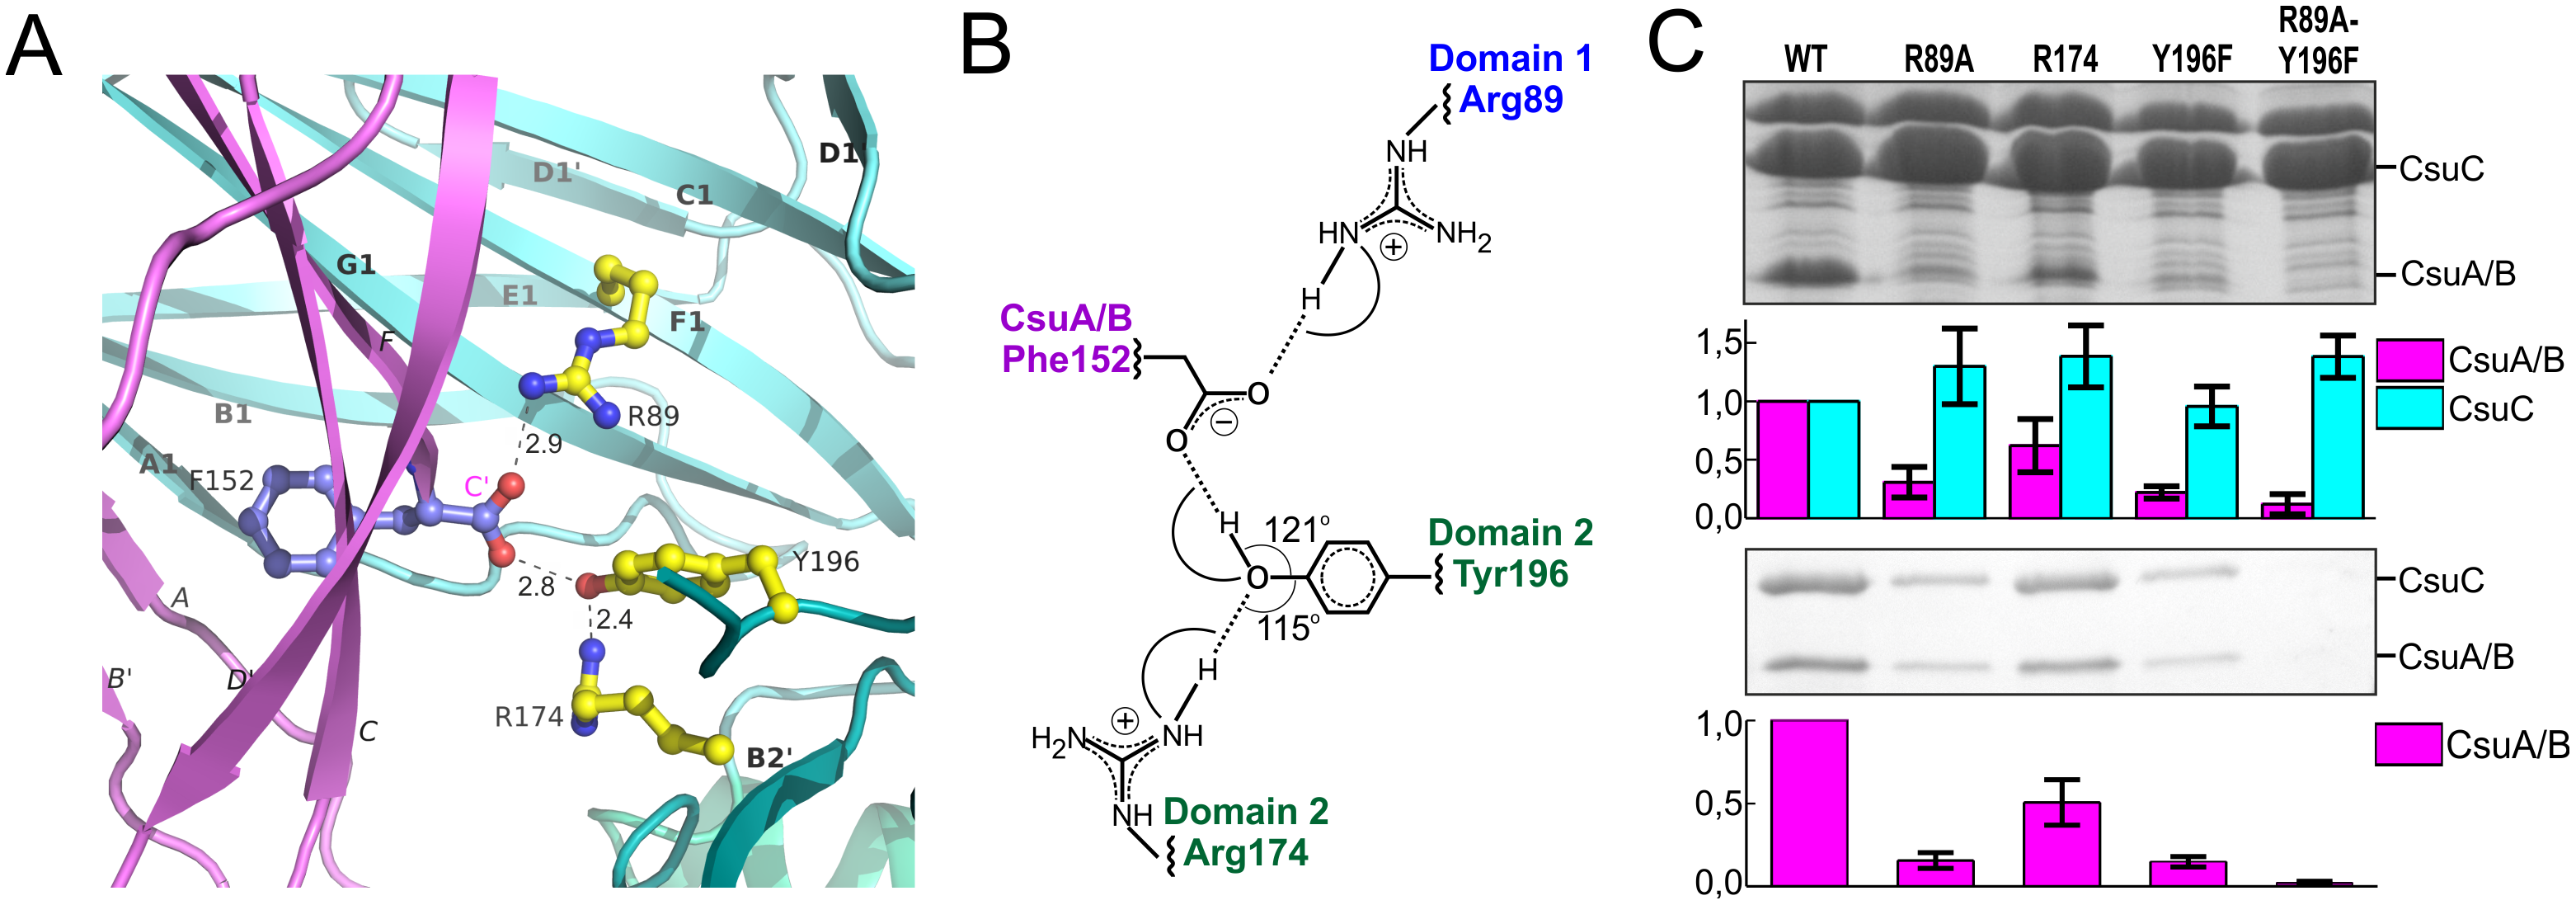 Network of ionic-hydrogen bonds anchoring the C-terminal carboxylate of CsuA/B in the inter-domain cleft of CsuC is essential for the complex formation.